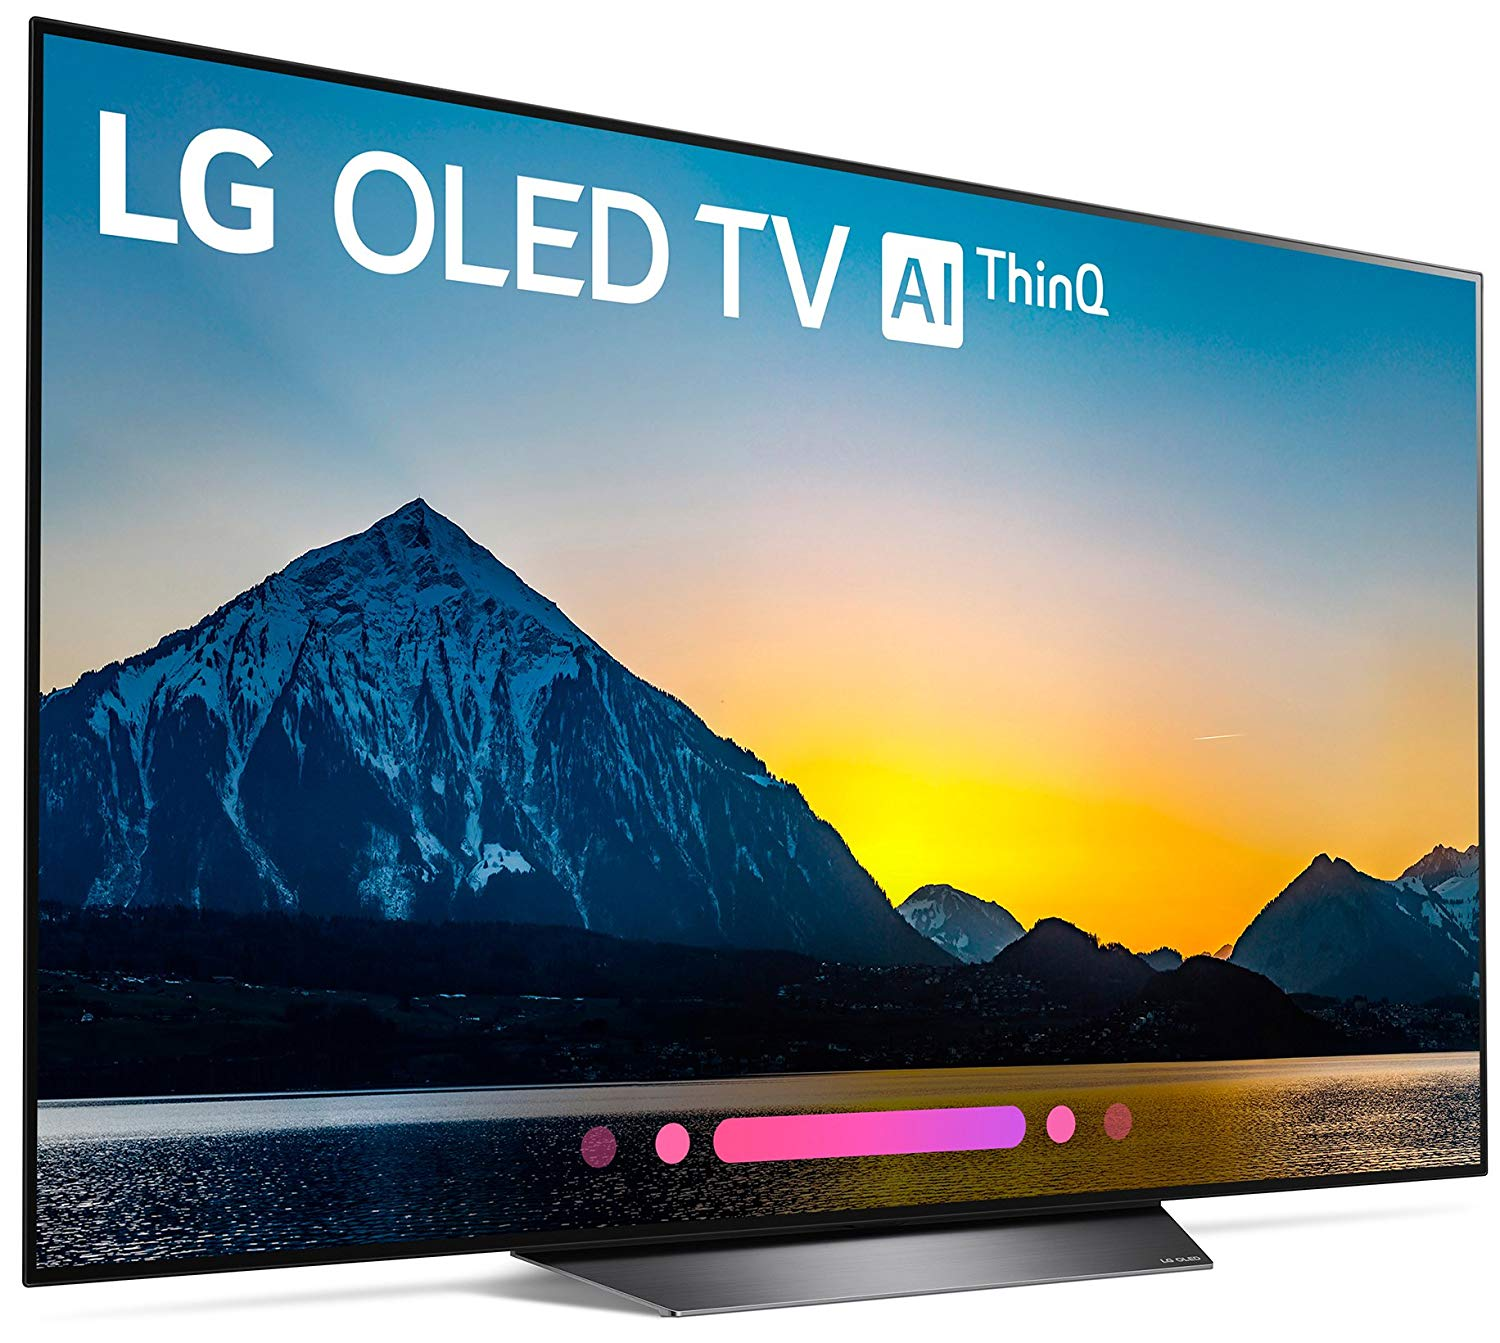 The Best 4k Tv Deals On Amazon Prime Day July 2019 The Trend Buzz